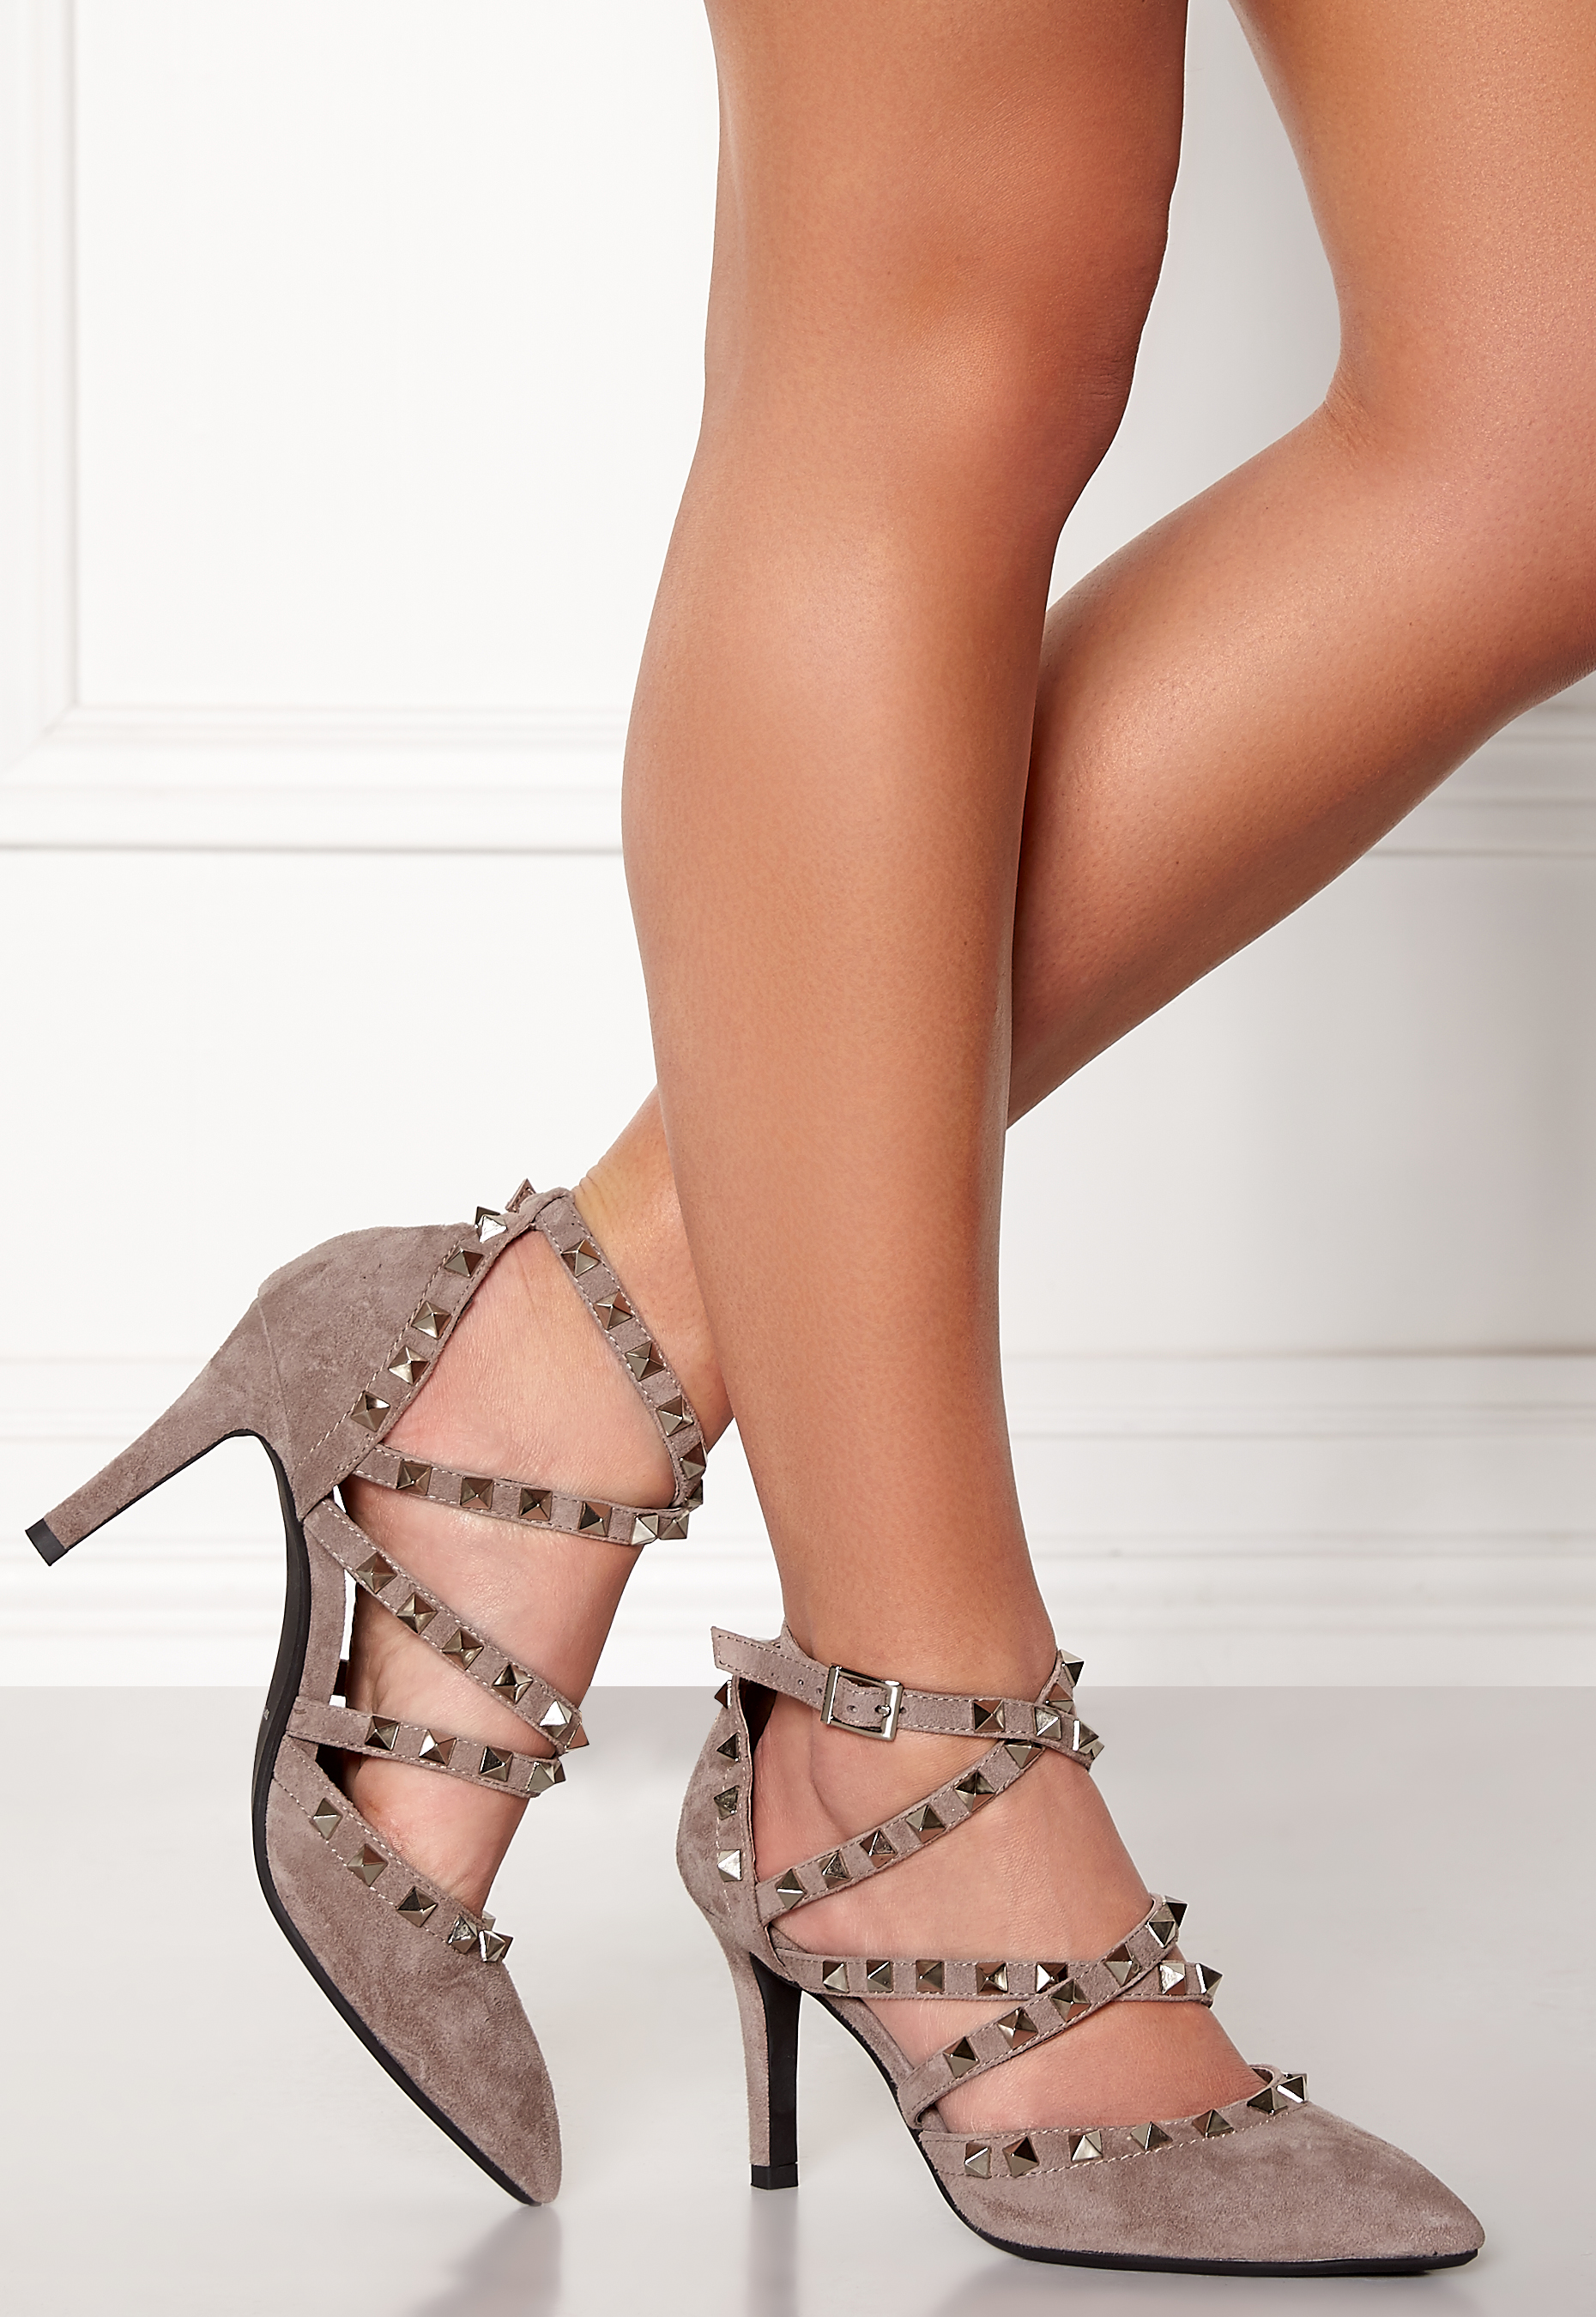 SOFIE SCHNOOR Shoe Stiletto Taupe Bubbleroom